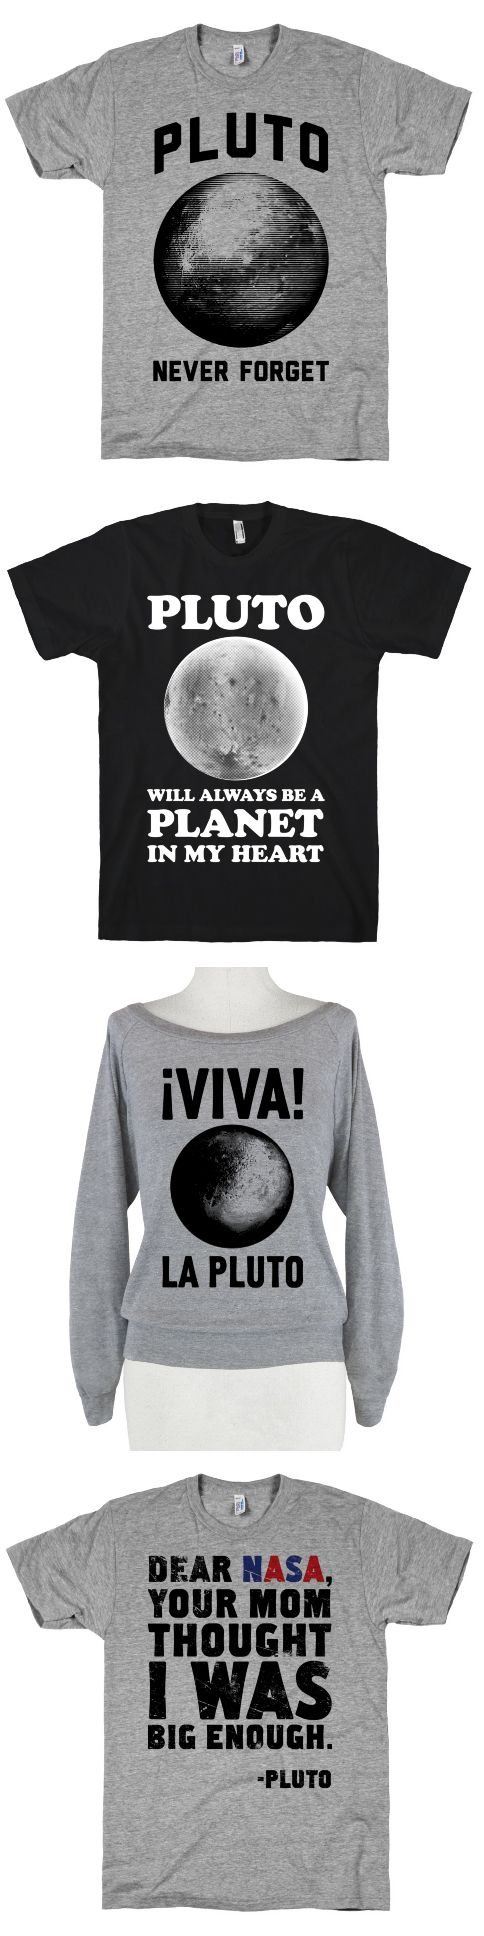 Xkcd shirt design - These Shirts Are Perfect To Celebrate The Space Mission To Pluto This Summer